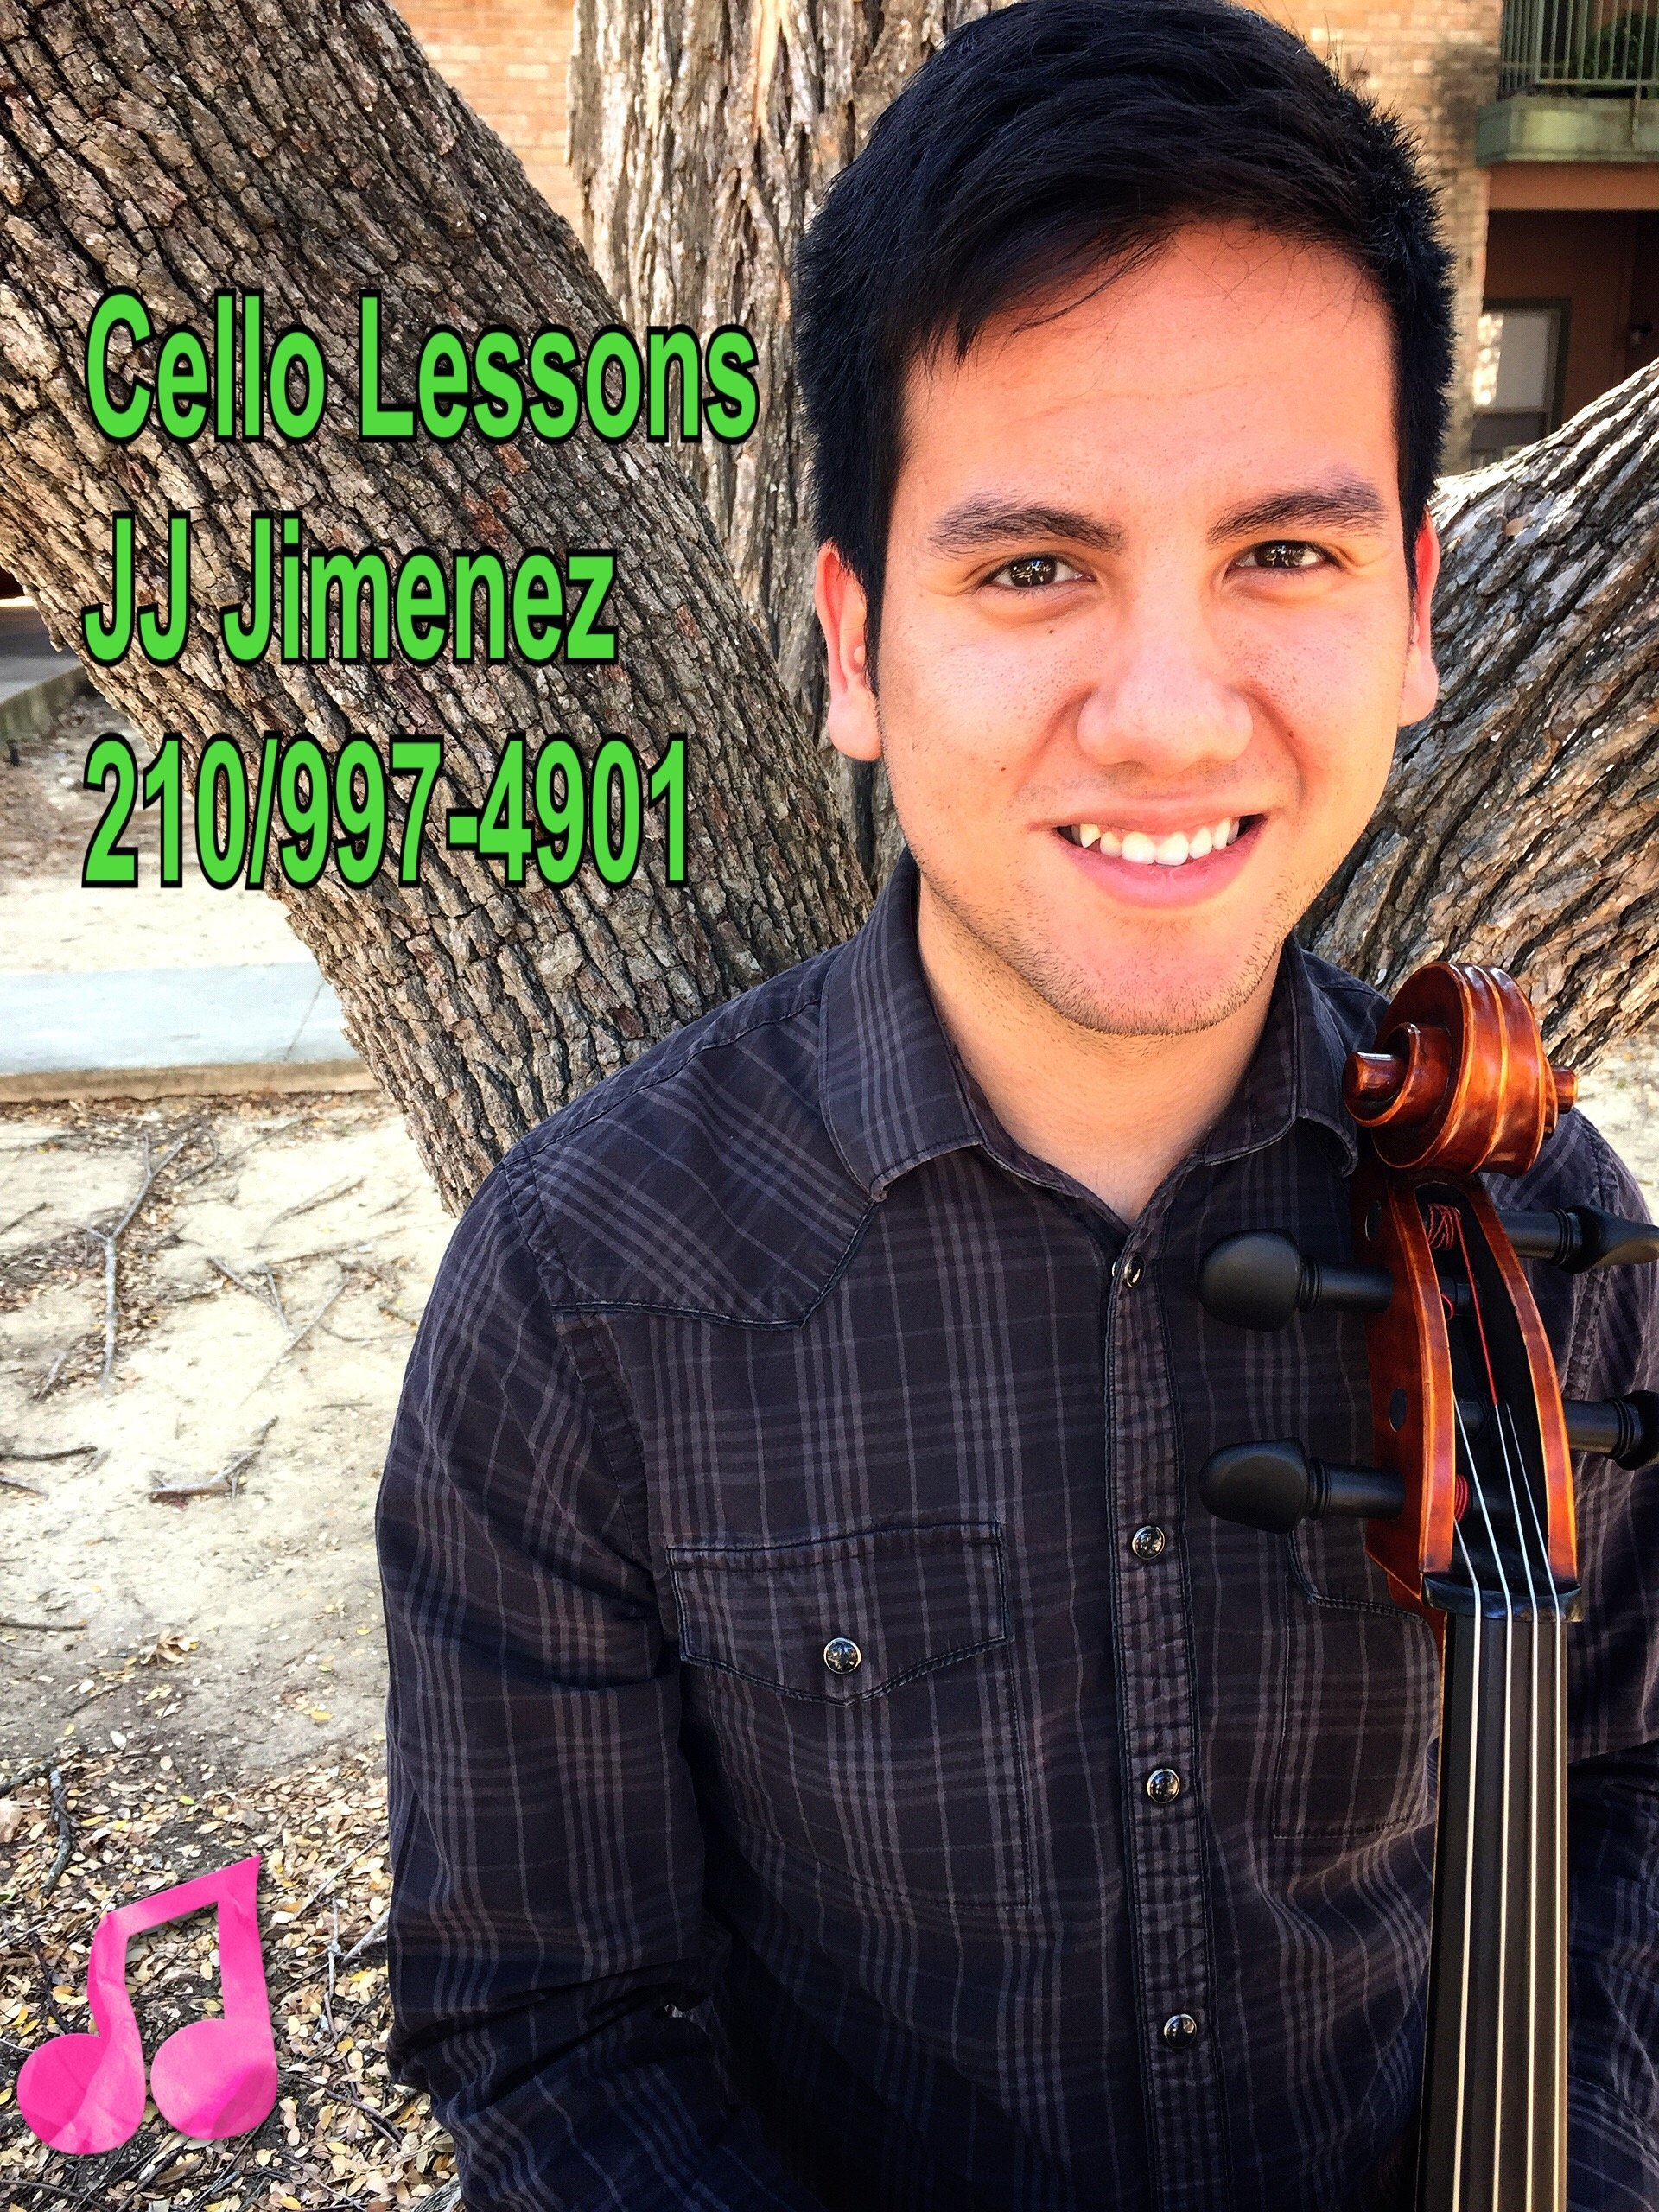 JJ Jimenez - Cello Lessons